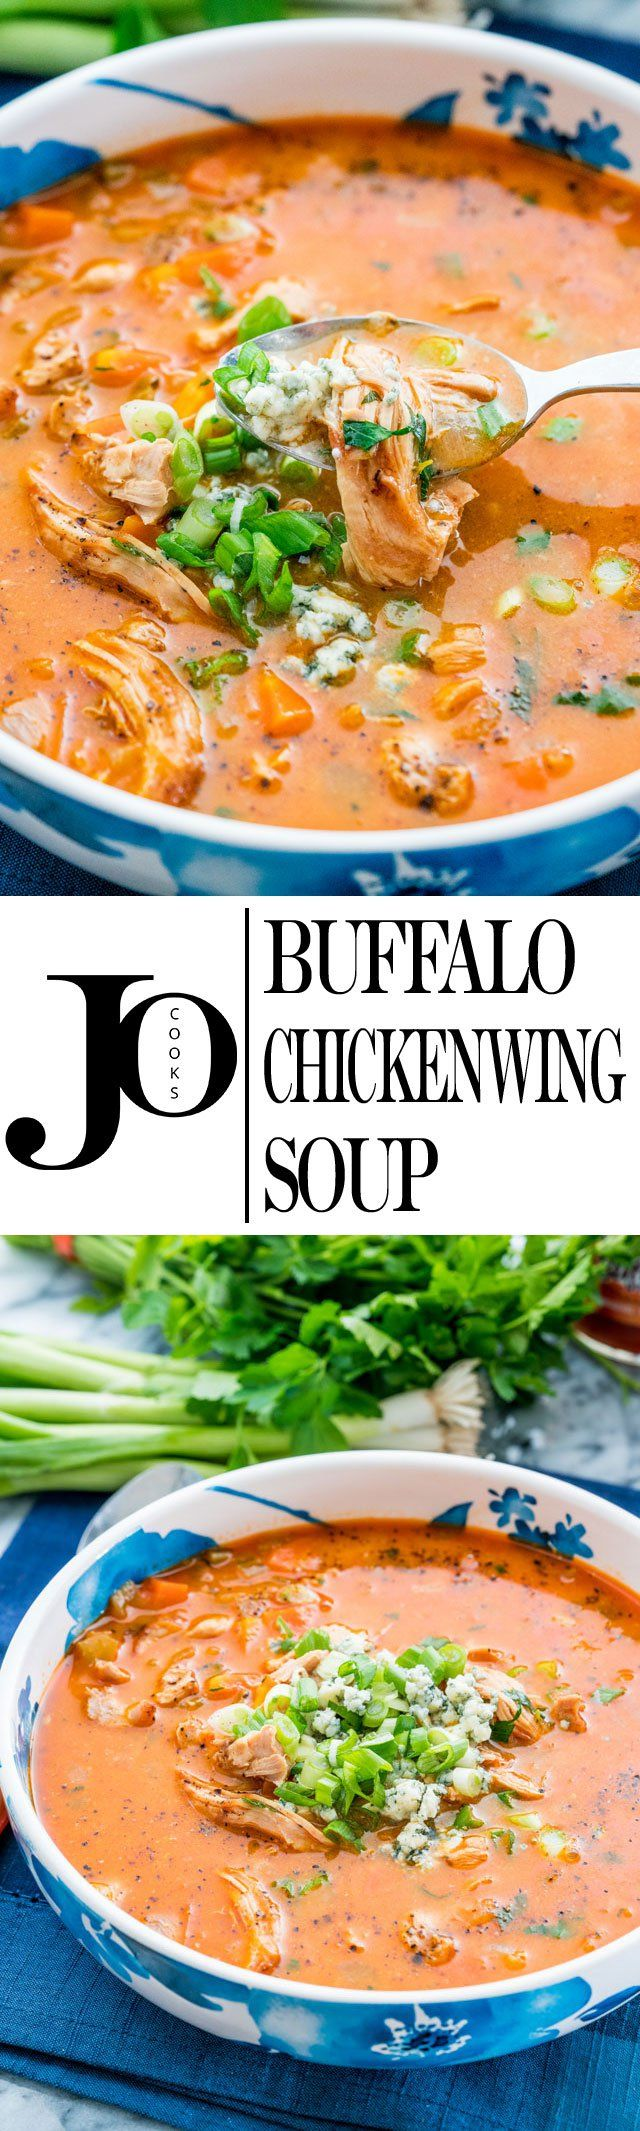 This Buffalo Chicken Wing Soup tastes just like buffalo chicken wings but in a creamy delicious soup. Bold flavors, easy to whip up, it will blow your mind! (Paleo Soup Crockpot)